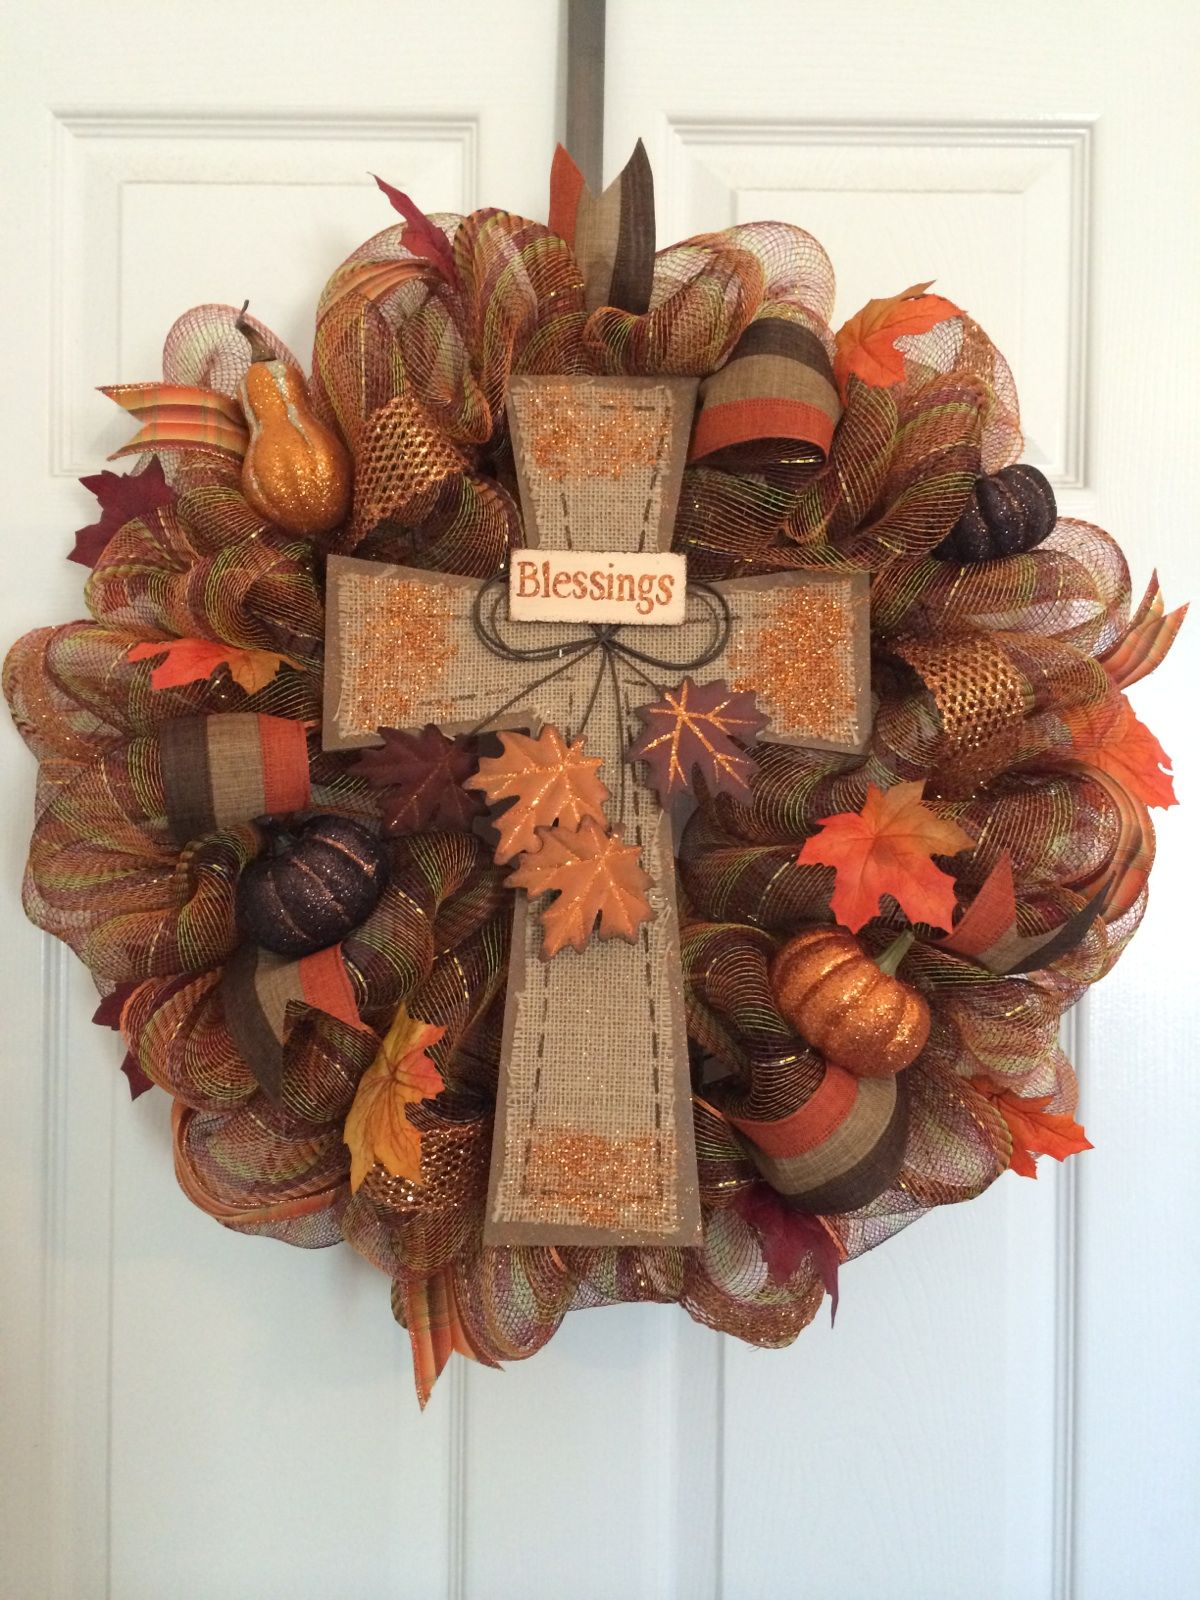 55 Awesome Wreaths to Adorn Your Front Door .